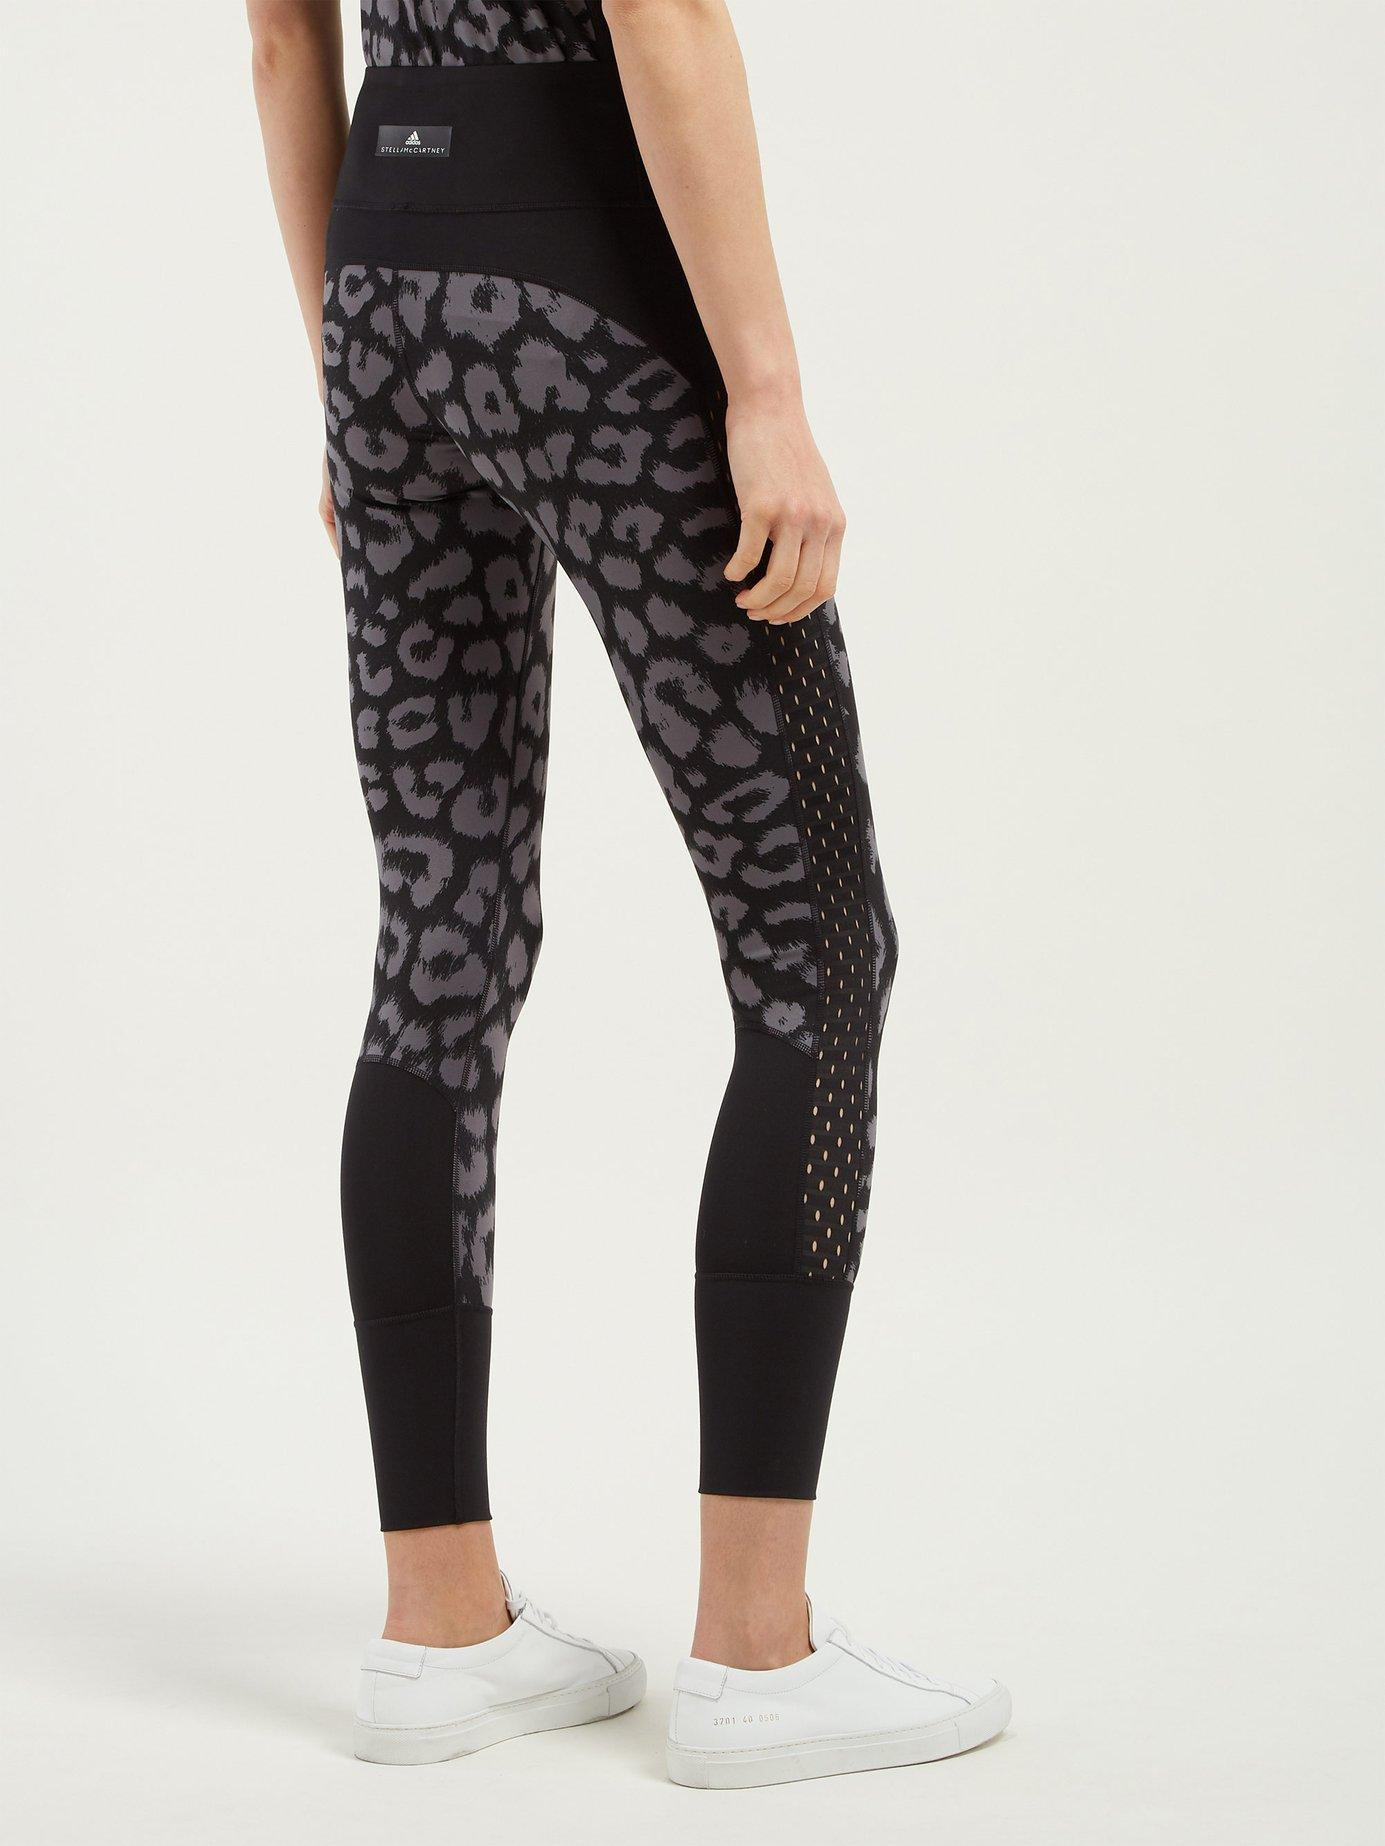 303e28f043521 Adidas By Stella McCartney - Black Believe This Comfort Leopard Print  Leggings - Lyst. View fullscreen